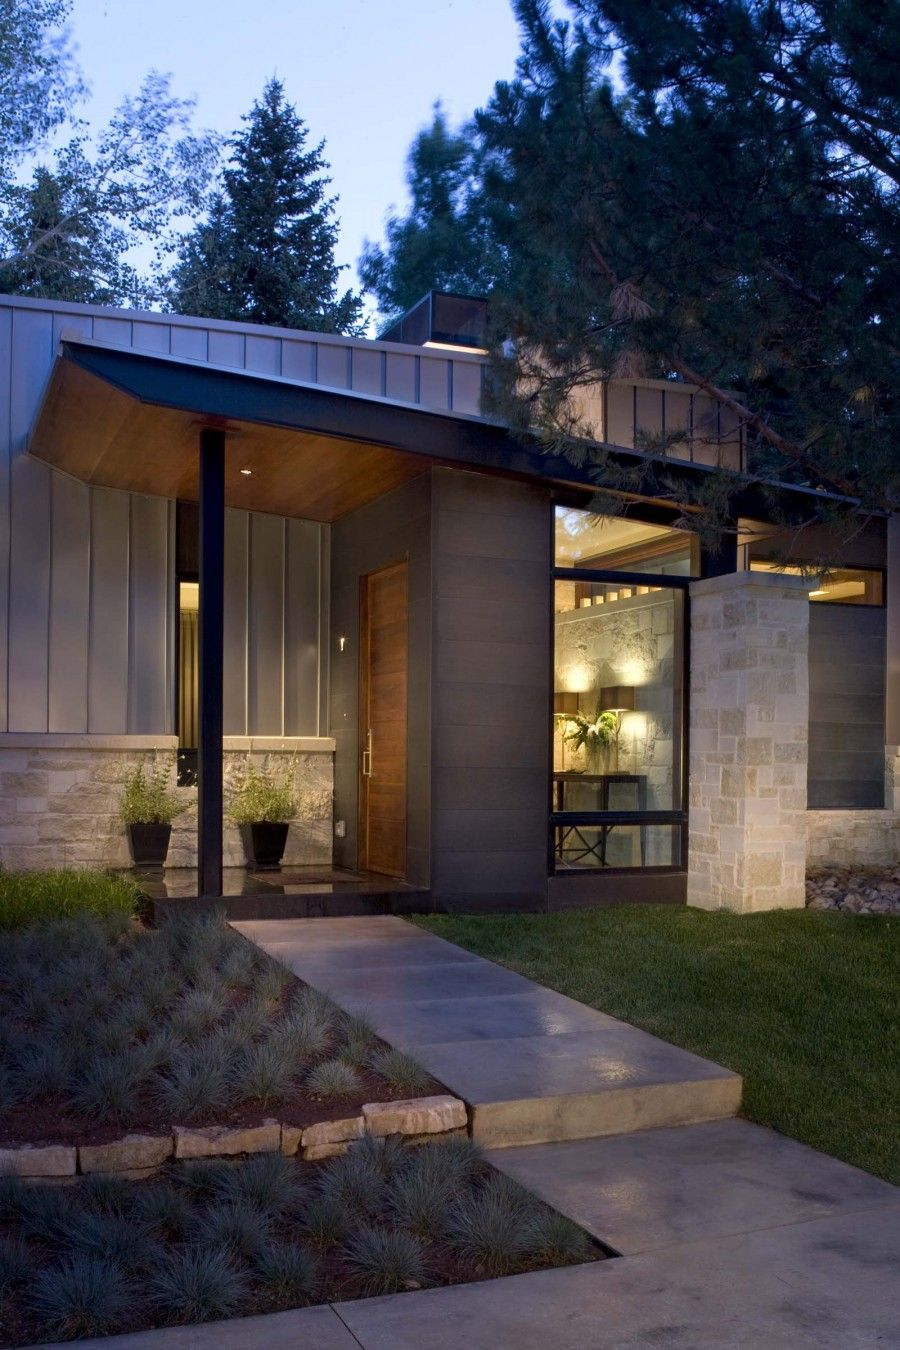 Contemporary ranch house remodel front entrance ideas with for Small ranch house remodel